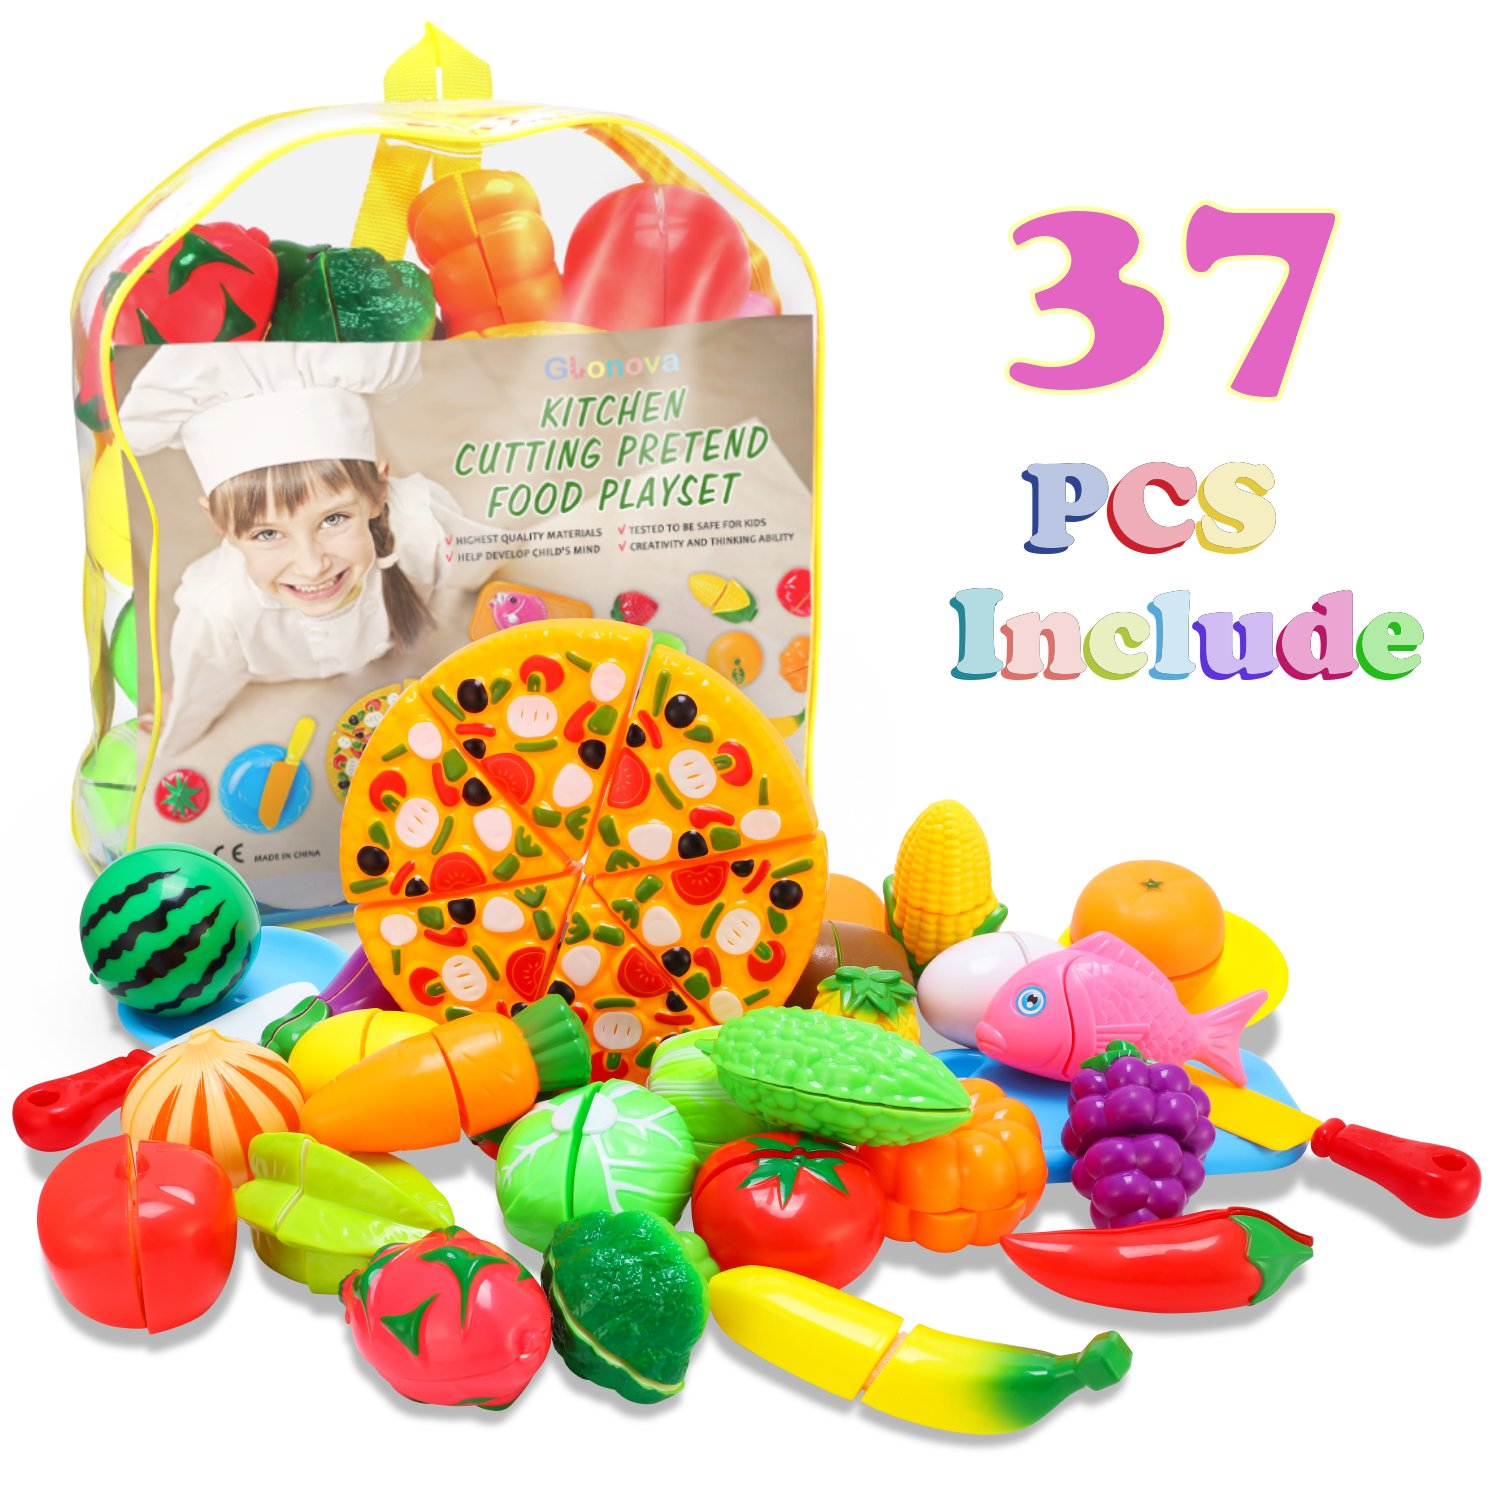 Glonova Play Food Cutting for Toddlers Kids, 37 Pcs Kitchen Toys Cutting Vegetables Fruits with Pizza Play Food Set Pretend Cutting Food Playset with Carry Bag for Children Girls Boys by Glonova